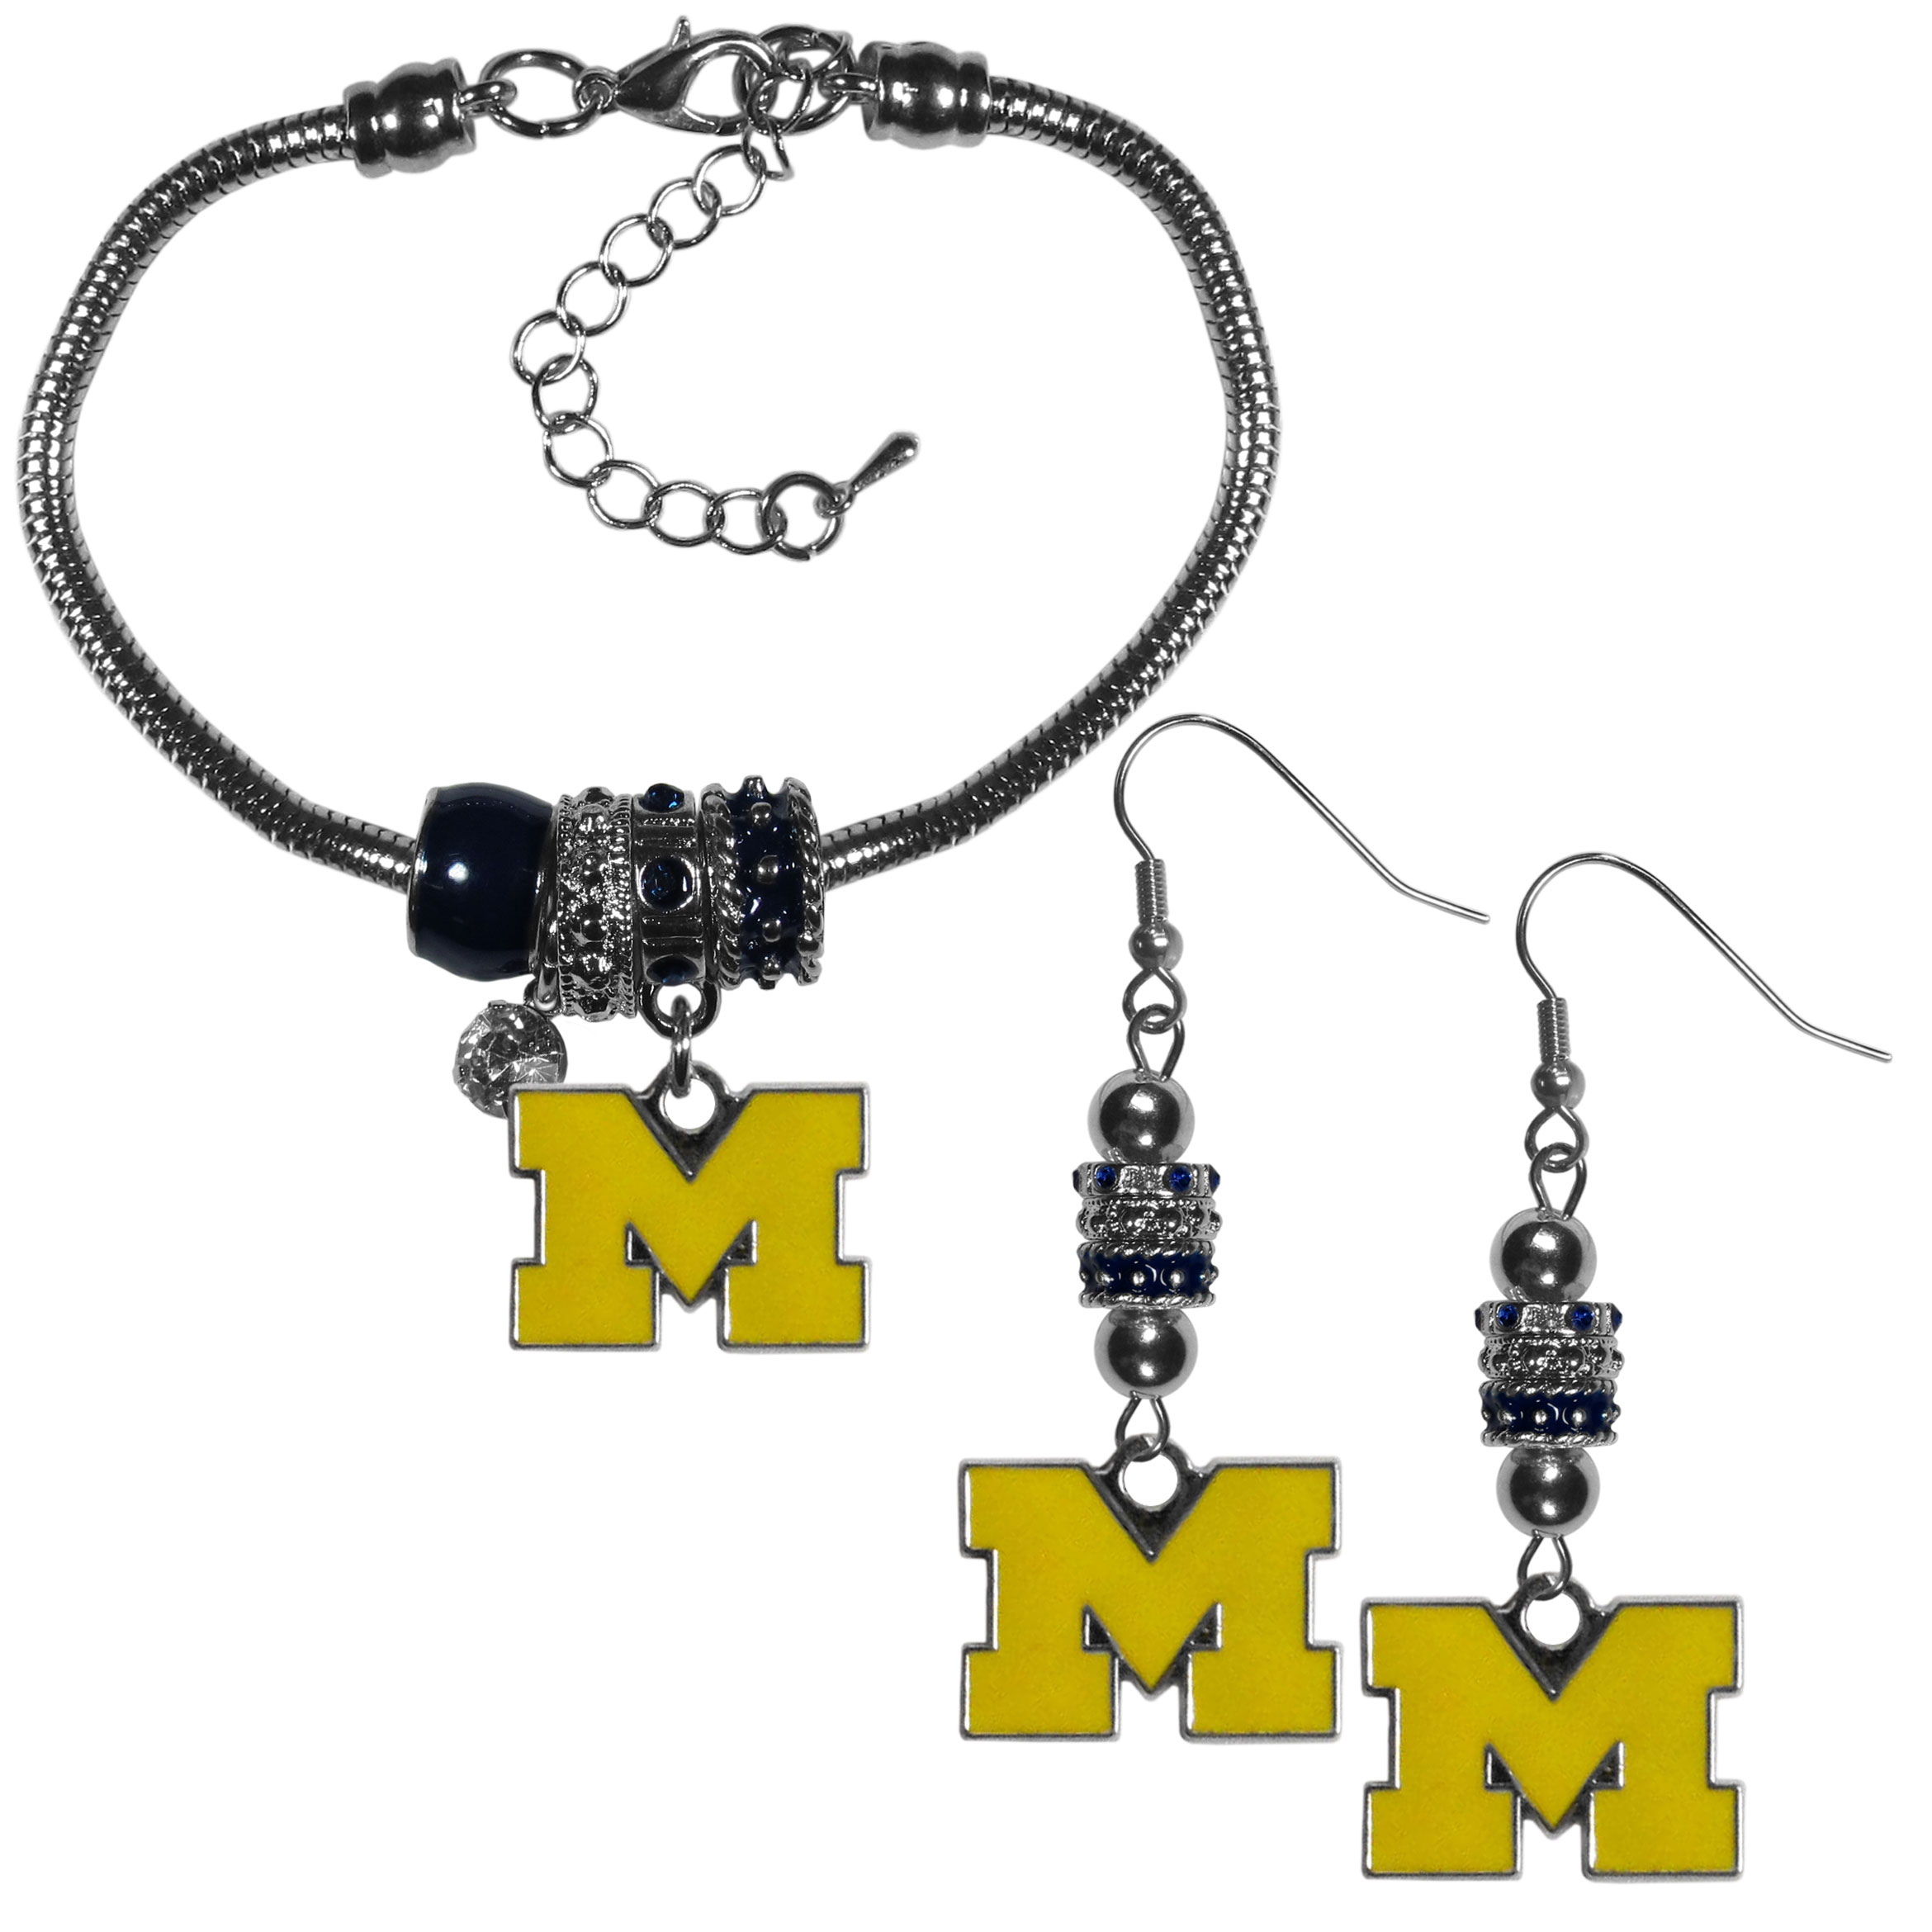 Michigan Wolverines Euro Bead Earrings and Bracelet Set - We combine the popular Euro bead style with your love of the Michigan Wolverines with this beautiful jewelry set that includes earrings and a matching bracelet. The stylish earrings feature hypoallergenic, nickel free fishhook posts and 3 team colored Euro beads and a metal team charm. The matching snake chain bracelet is 7.5 inches long with a 2 inch extender and 4 Euro beads with a rhinestone charm and team charm.